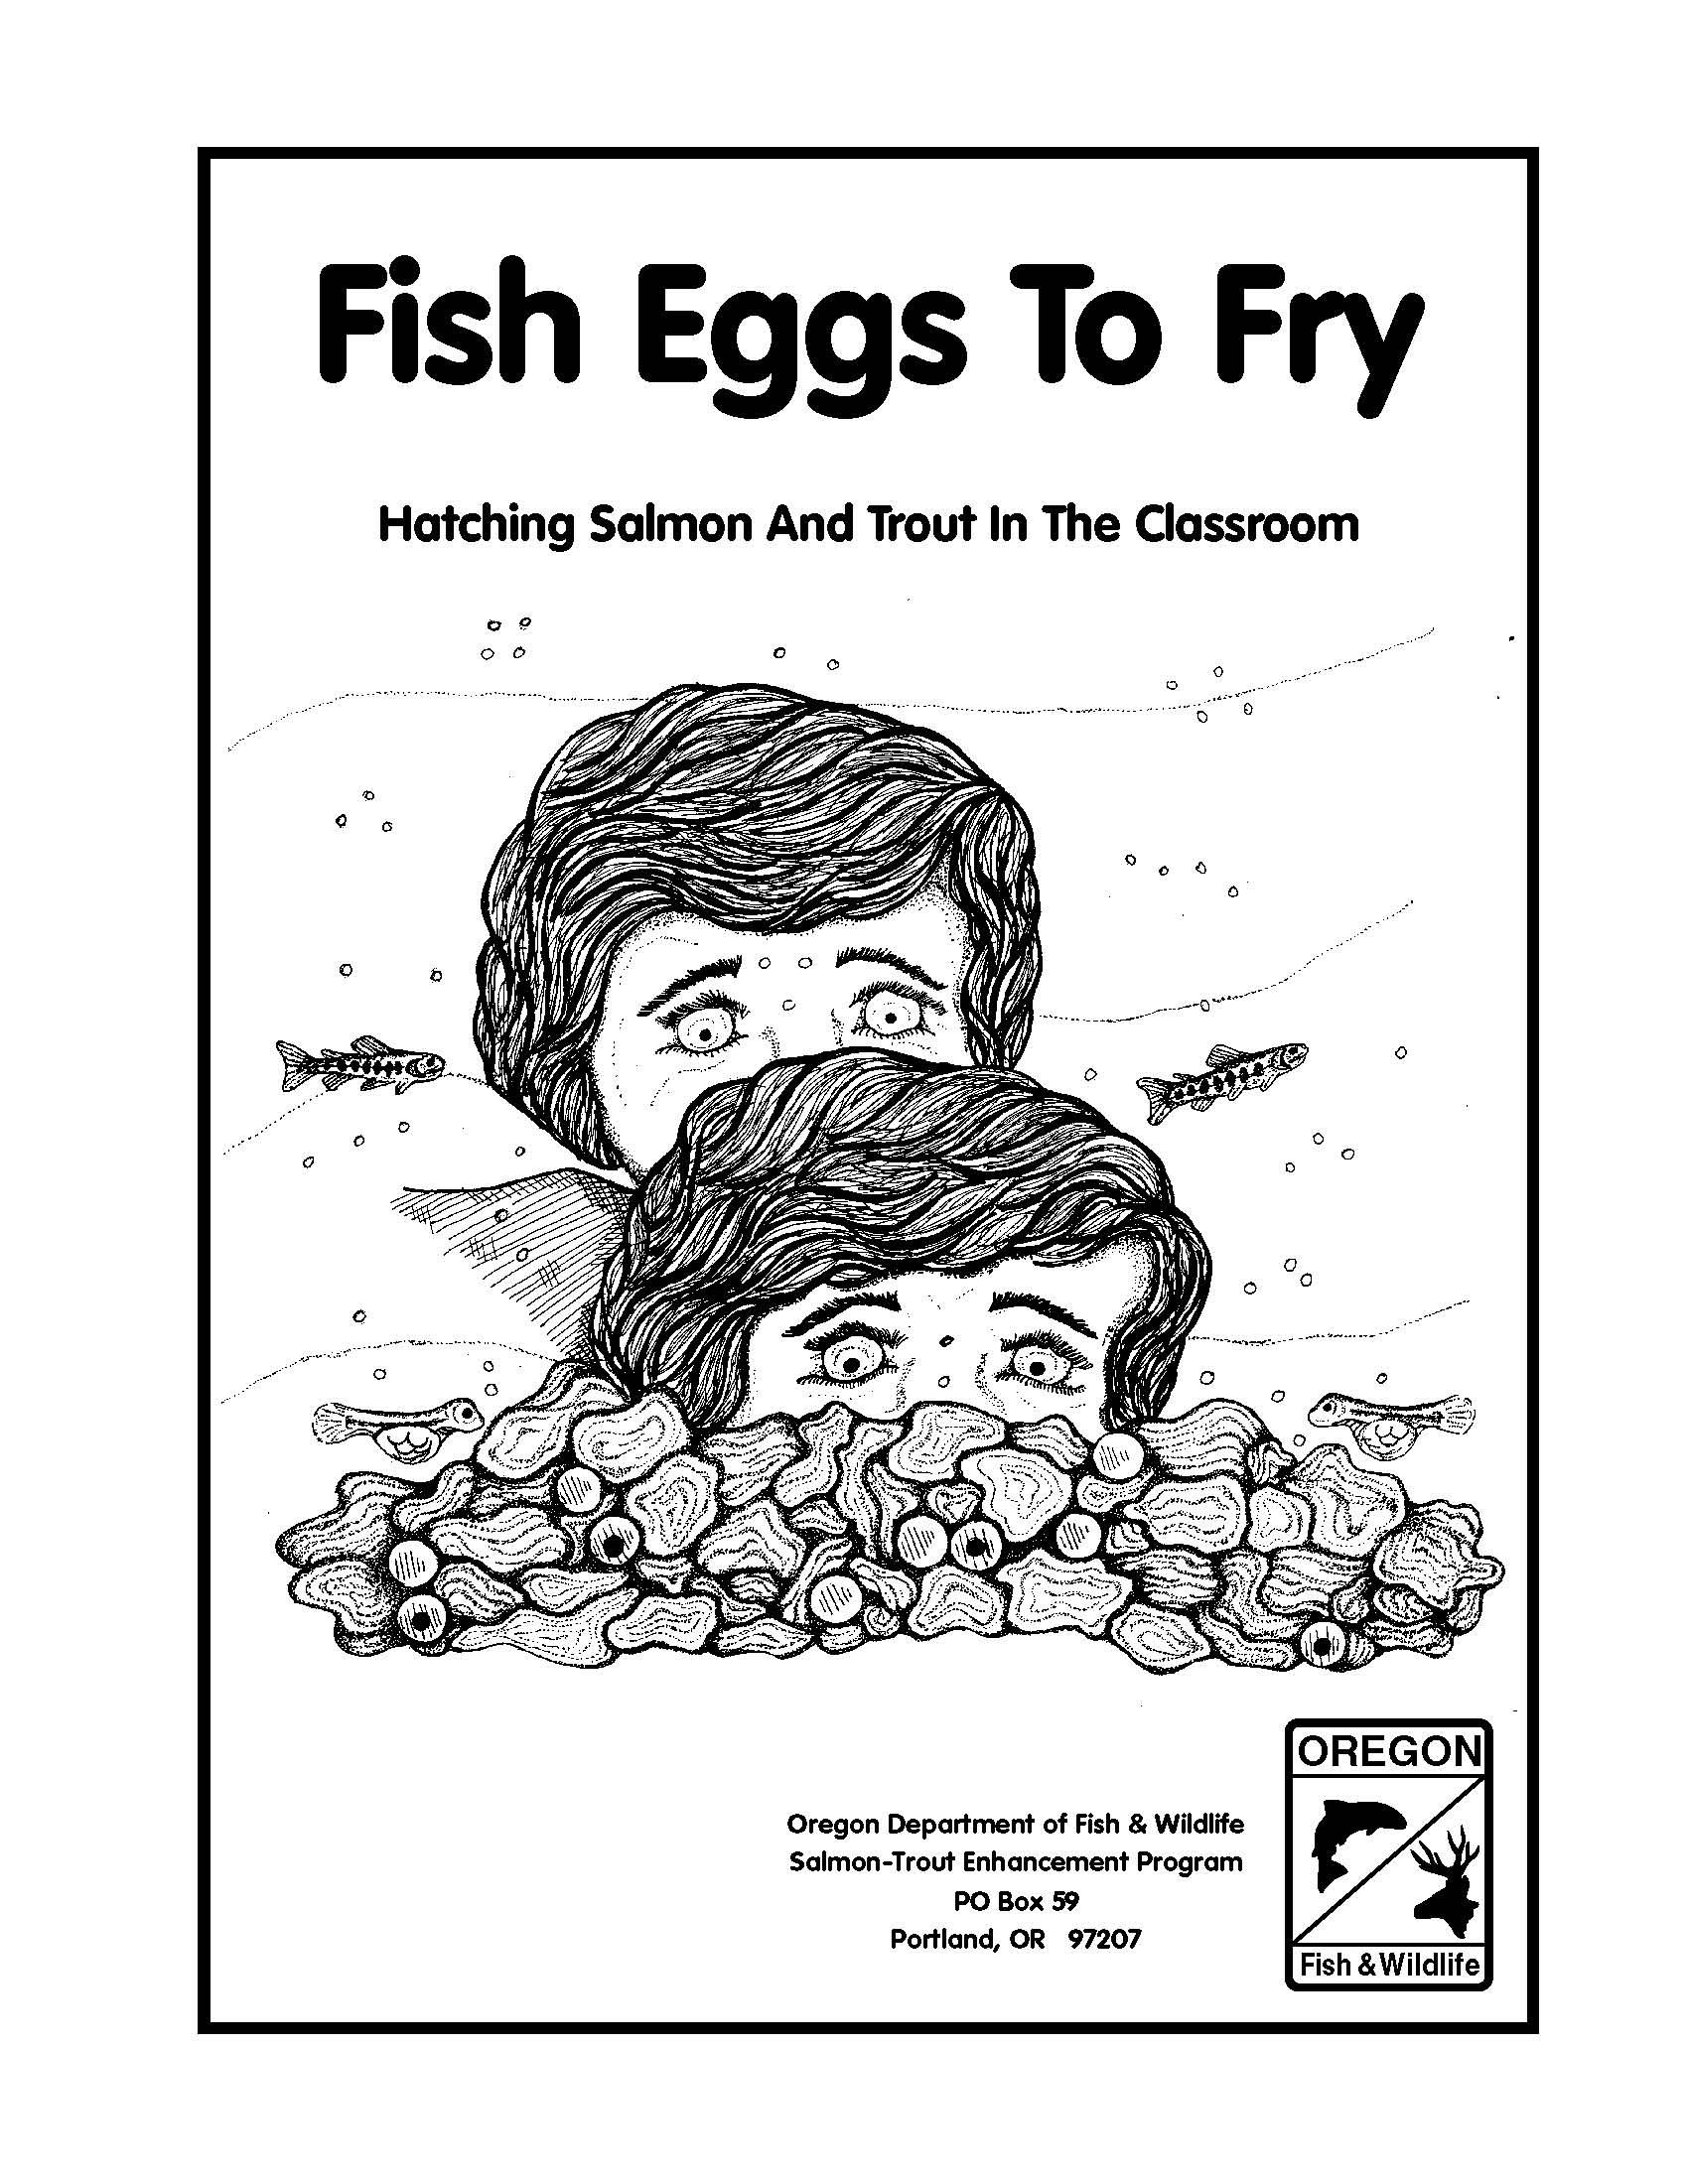 Fish Eggs To Fry Hatching Salmon And Trout In The